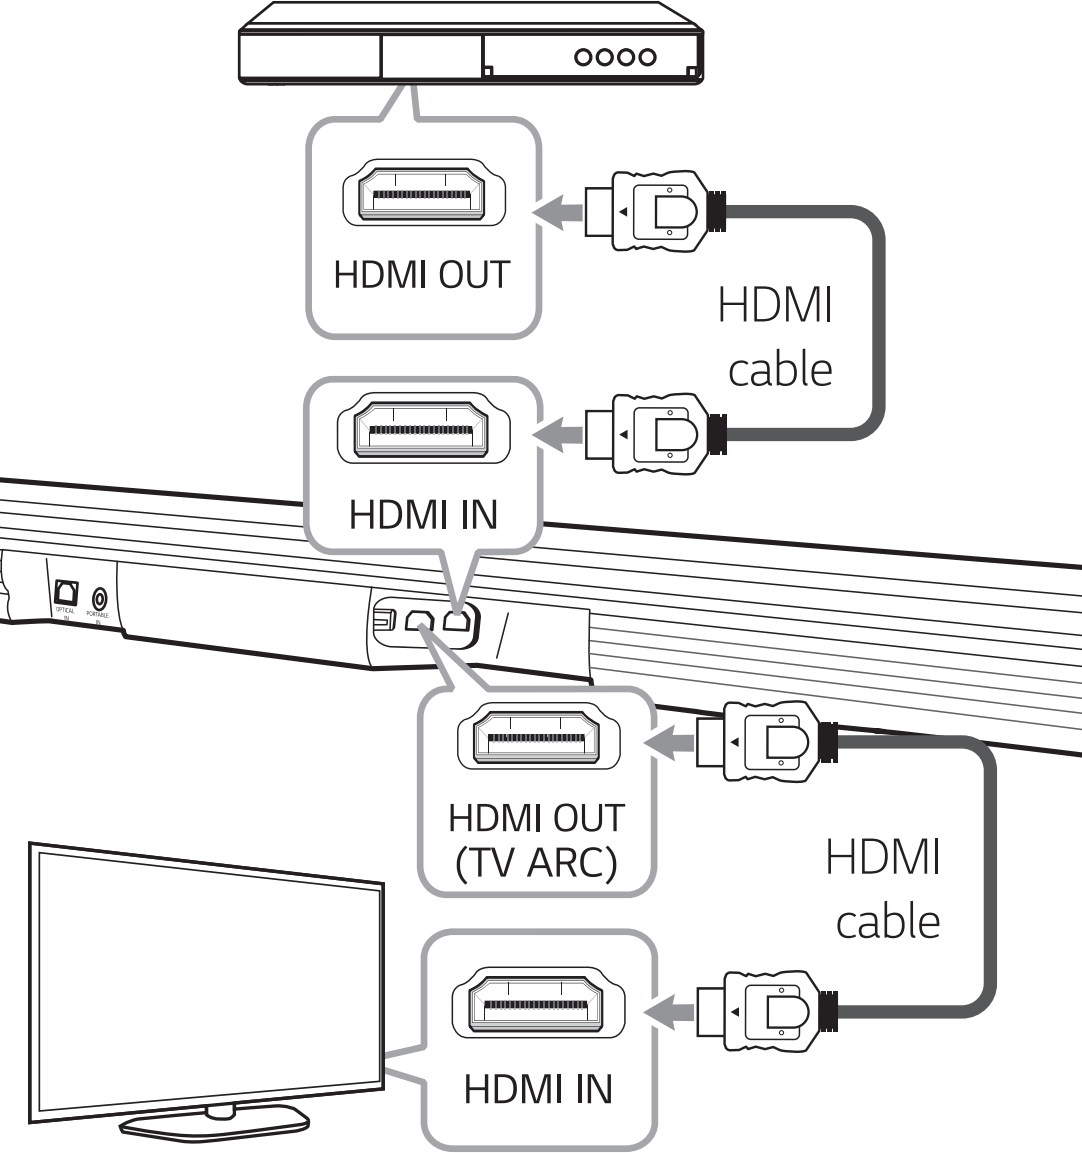 Diagram of connecting HDMI first from a device to sound bar, then from the sound bar to television